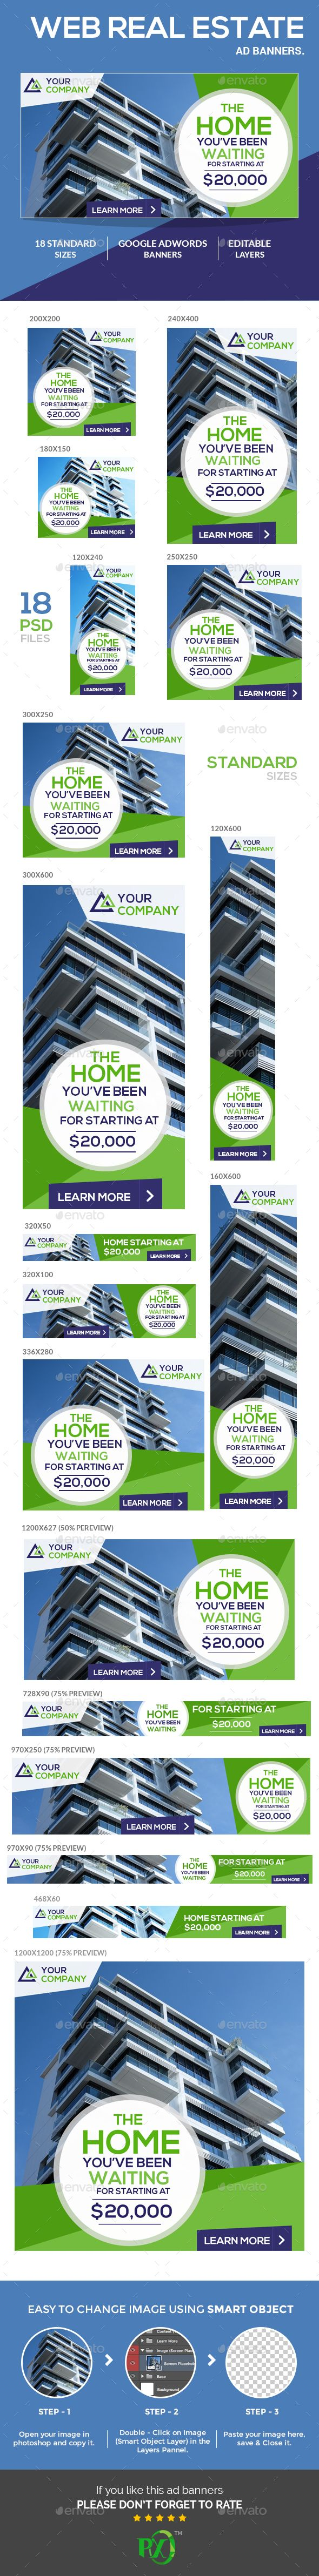 Web Real Estate Ad Banners Template PSD. Download here: http://graphicriver.net/item/web-real-estate-ad-banners/16440338?ref=ksioks